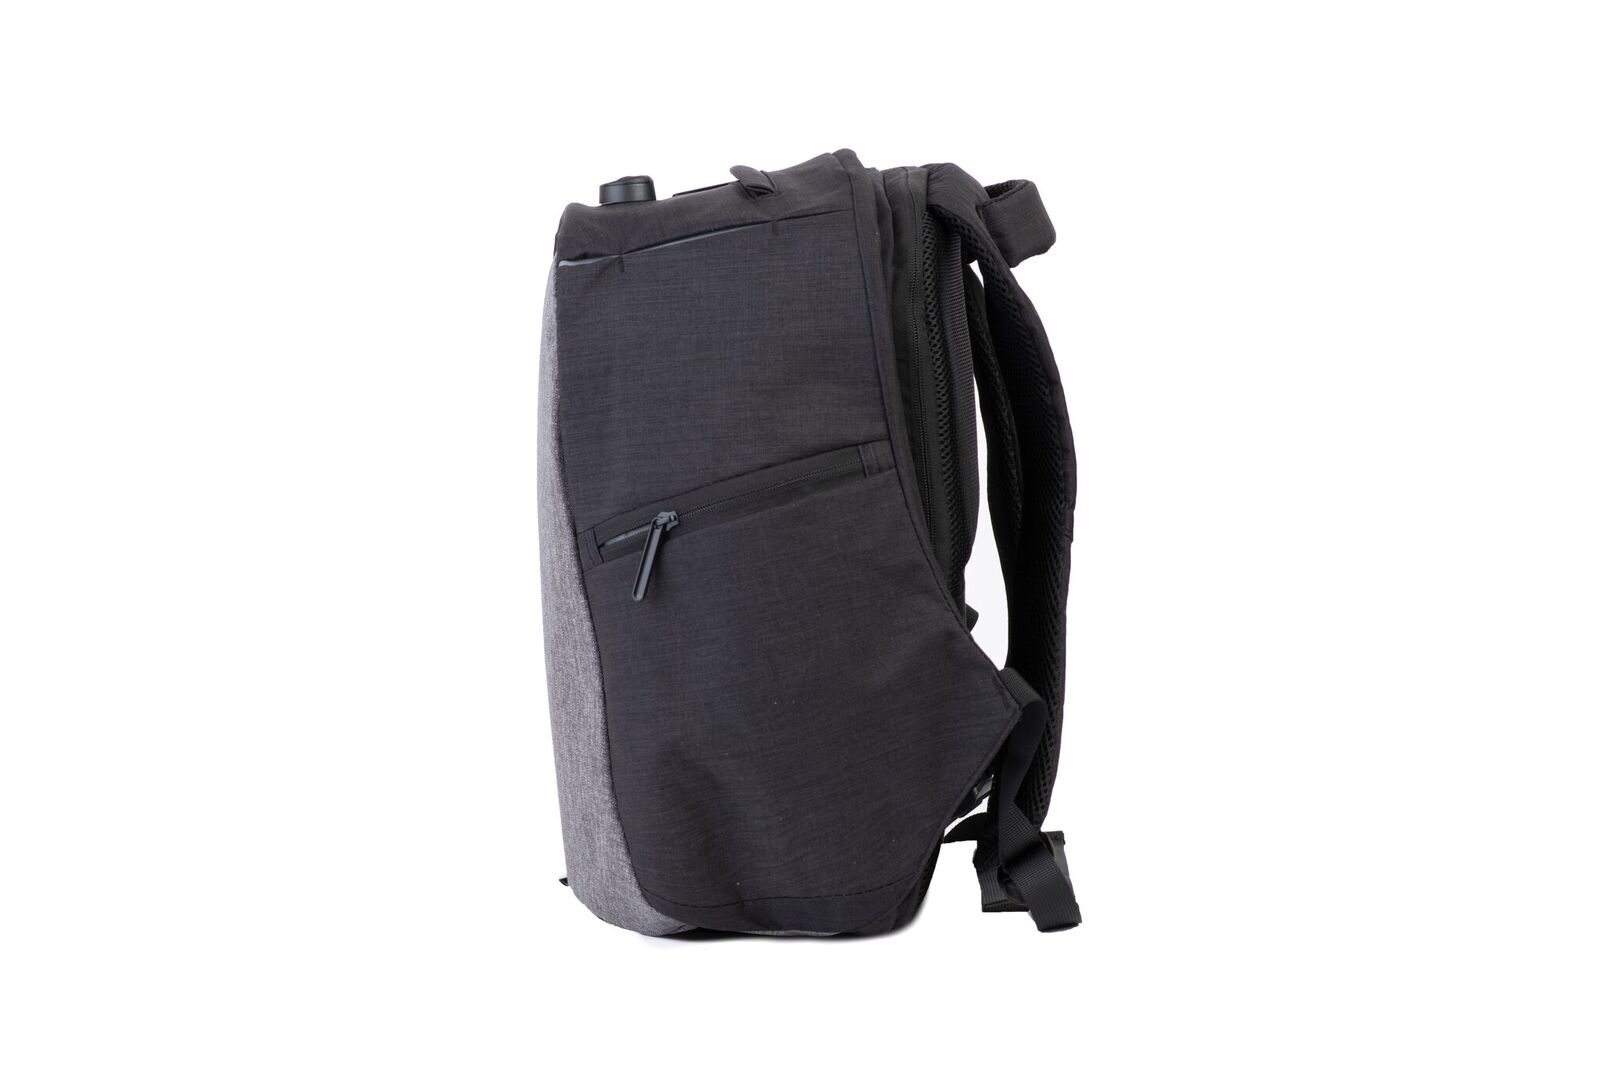 side view of snug backpack